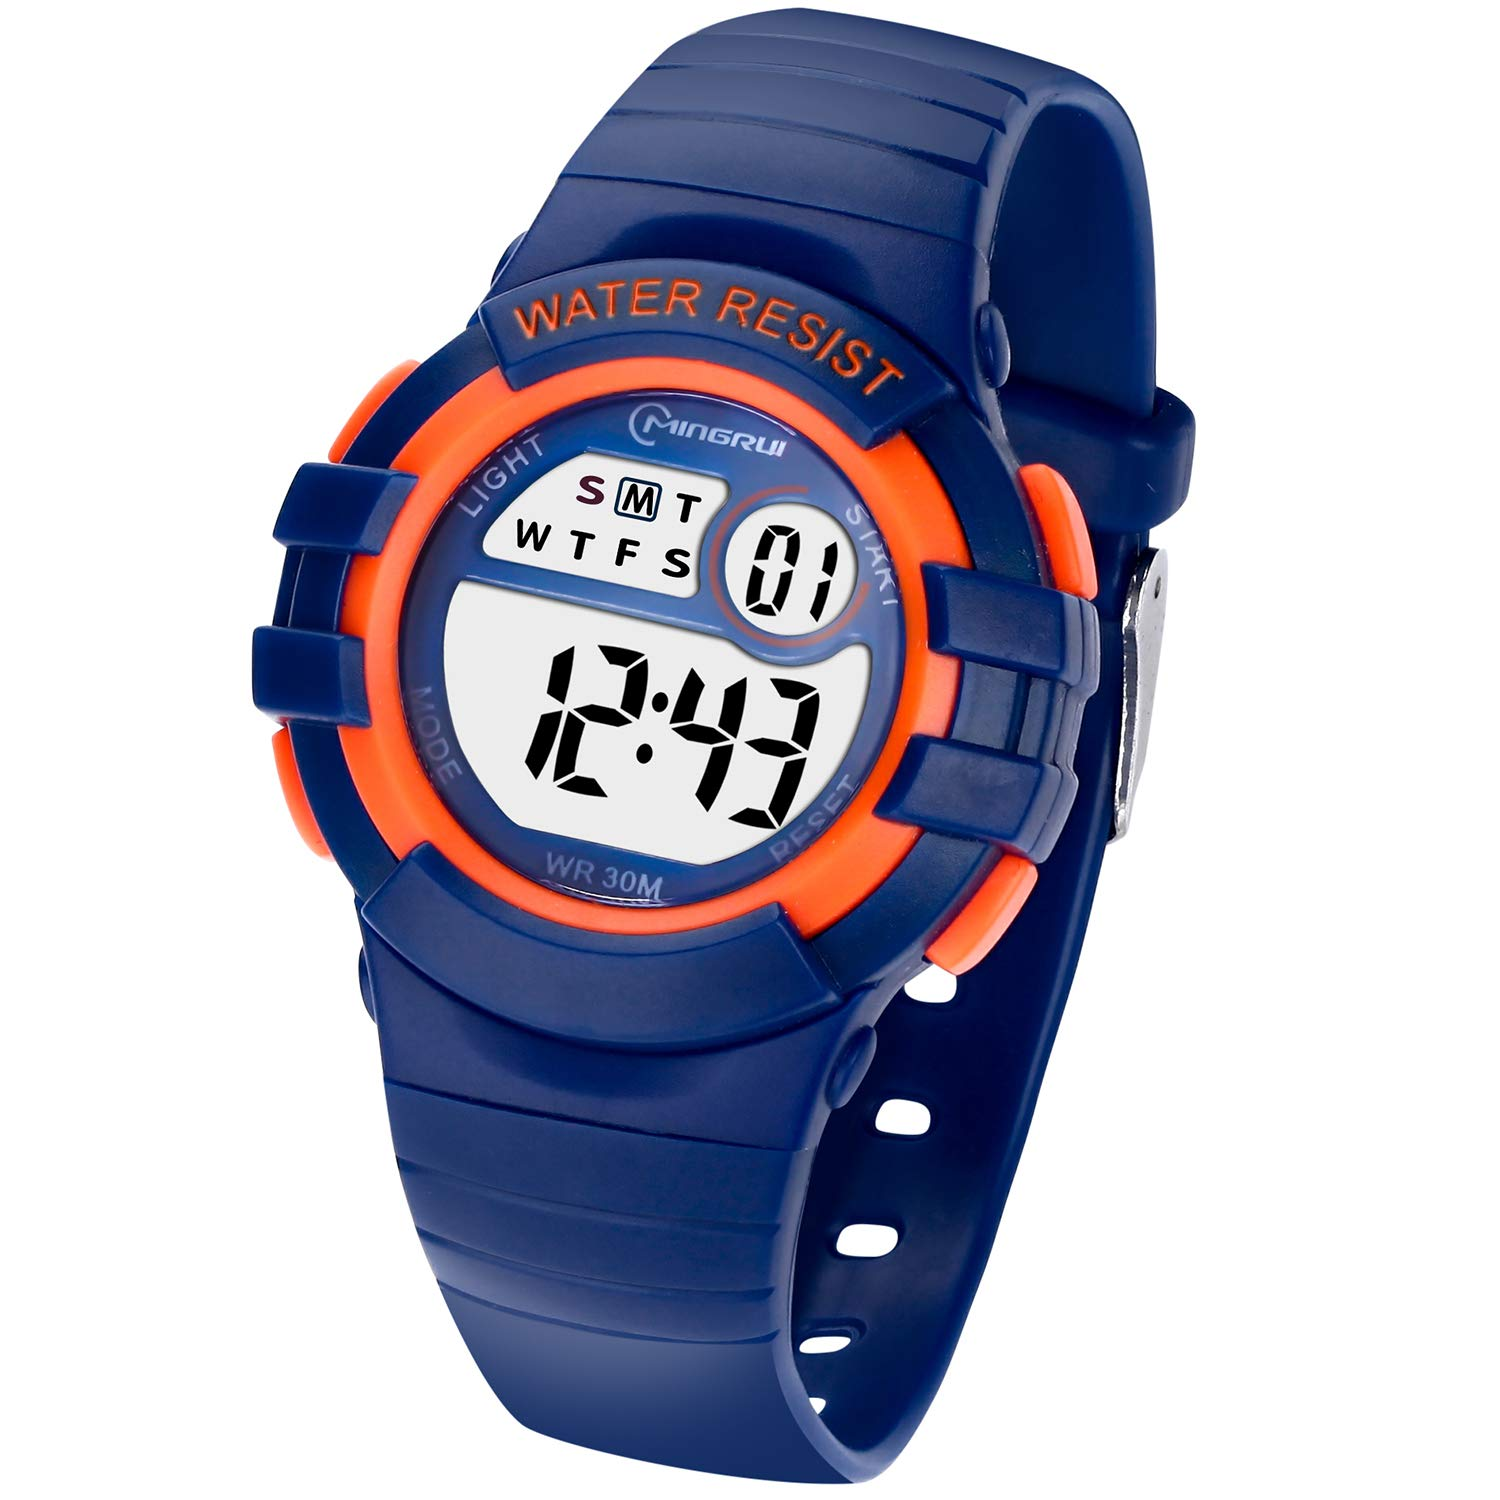 Kids Digital Watches for Girls Boys,Outdoor Sports Waterproof Multi Function Wristwatch with Alarm/Timer/LED Light/Dual Time Zone/Soft Rubber Strap for Children Gift Box (Blue+Orange) by PINGHE